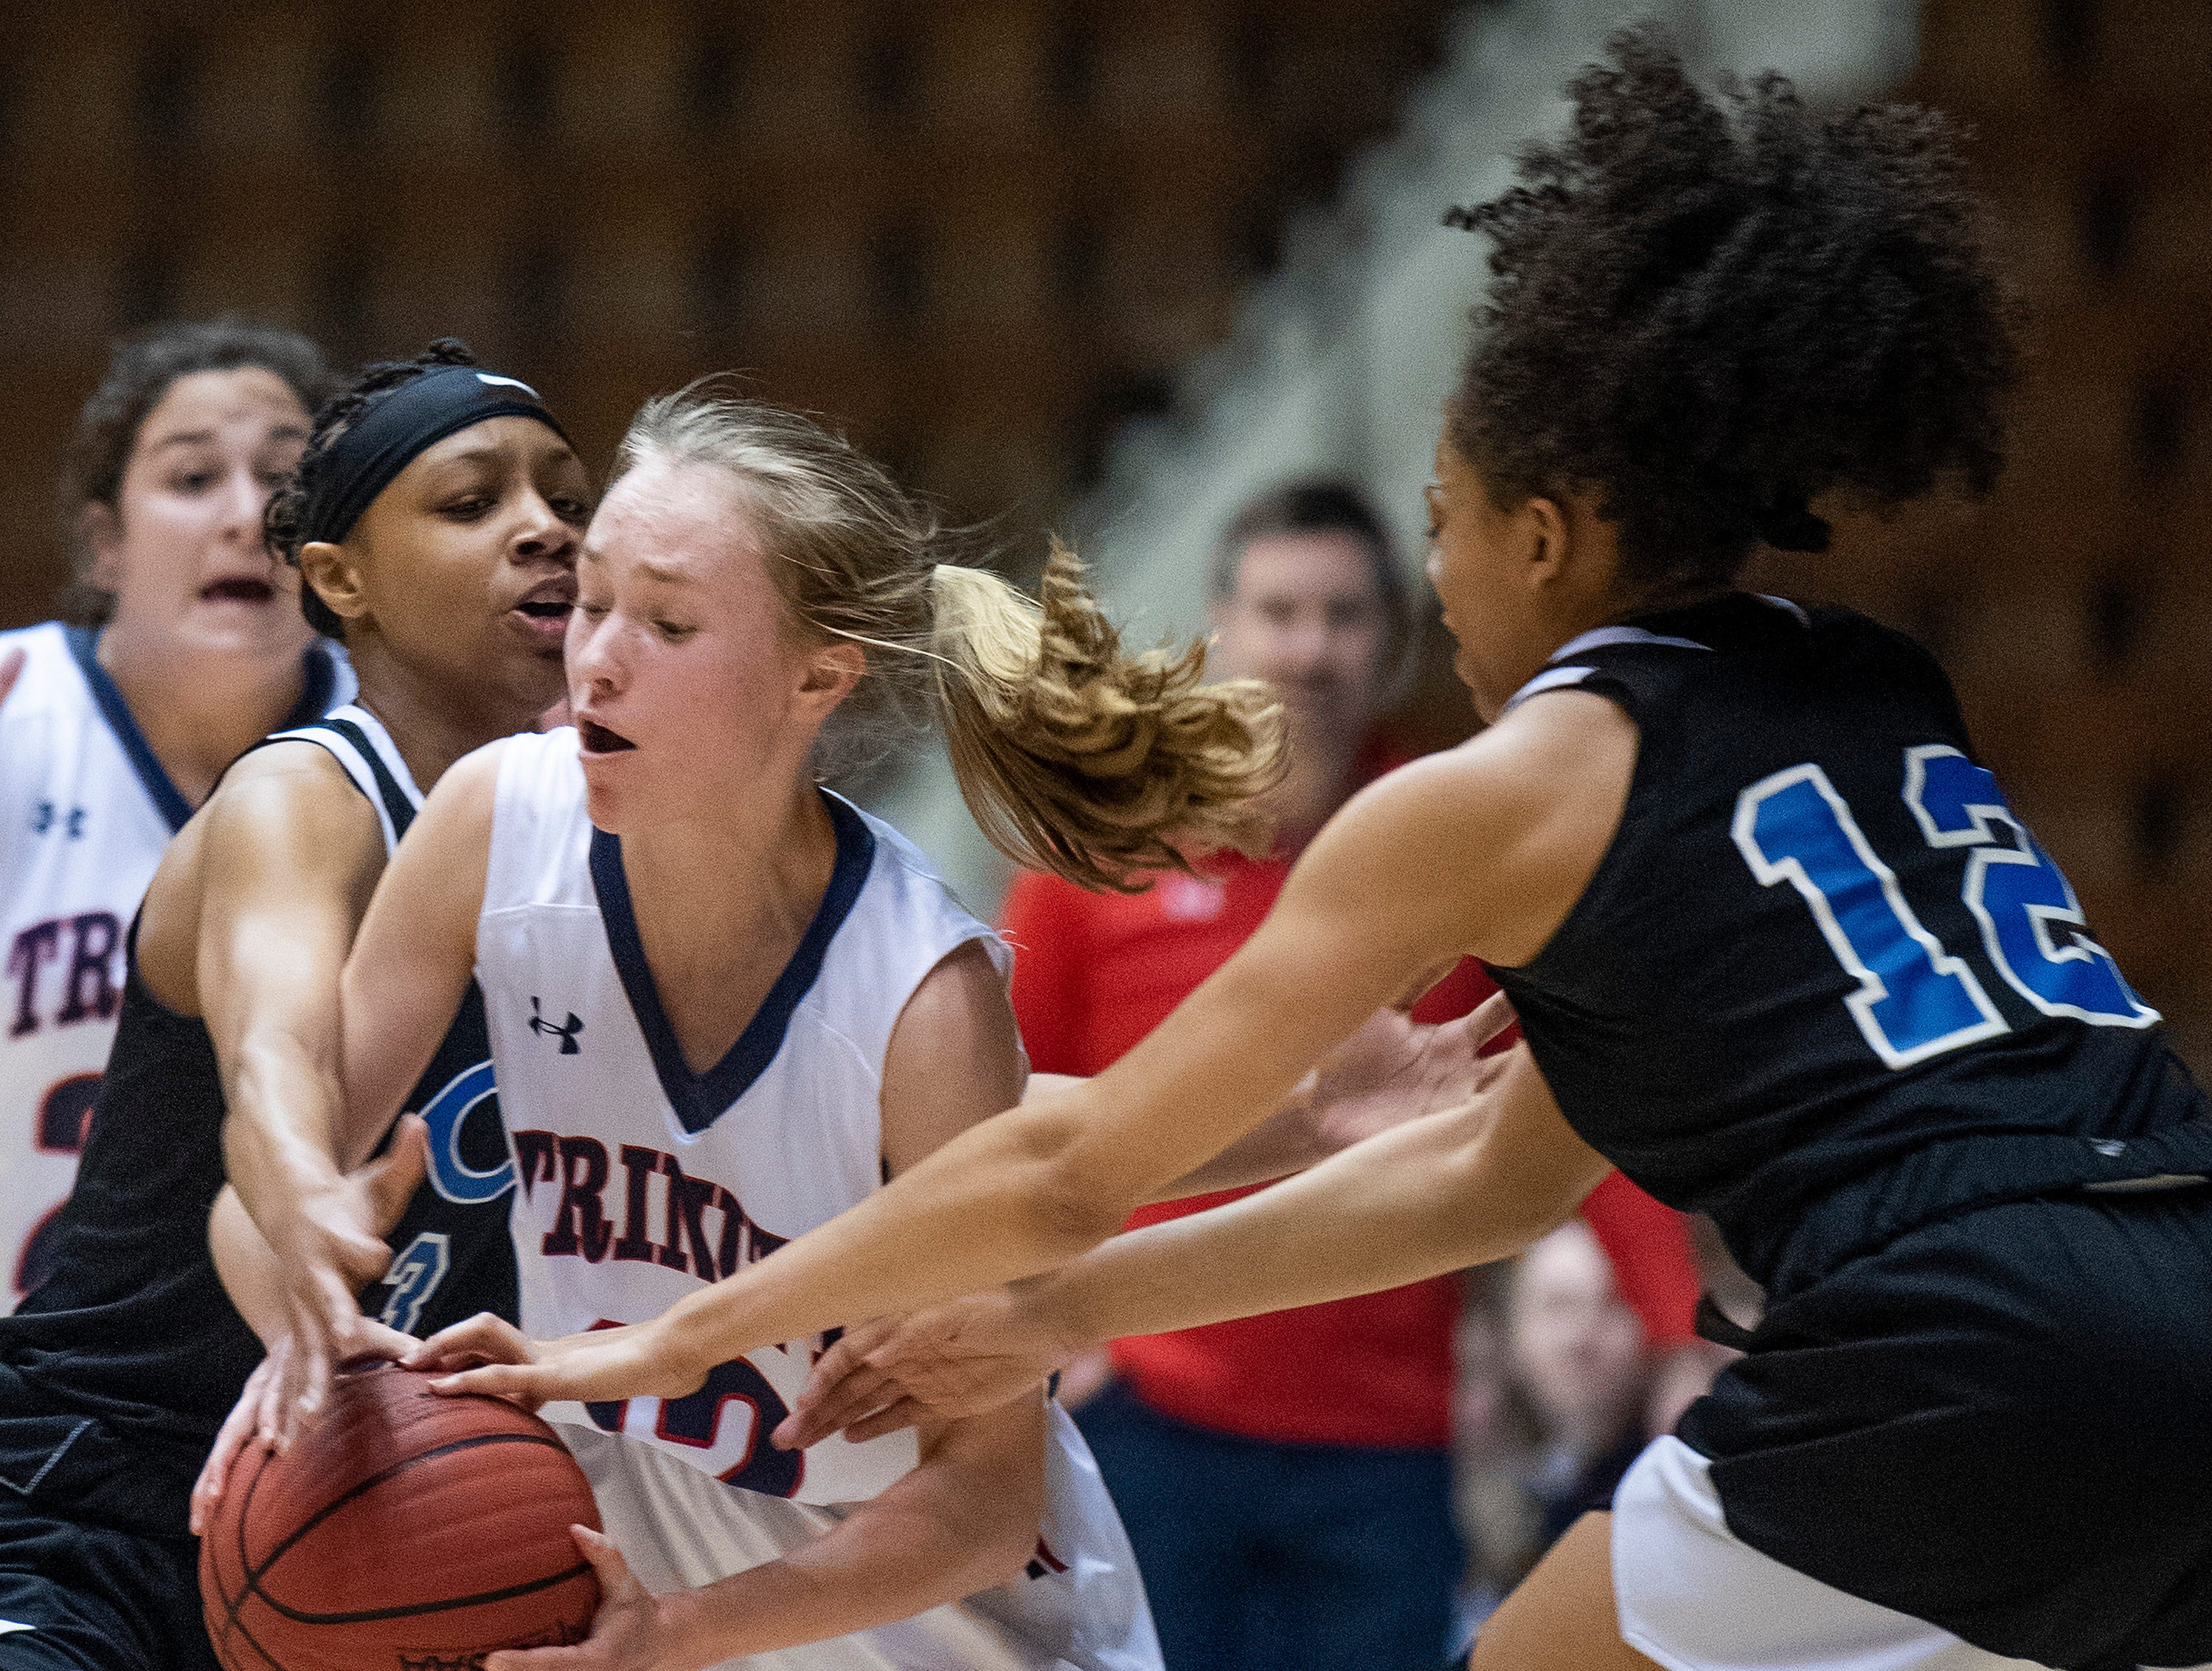 Trinity's Emma Kate Smith is double teamed by Childersburg's Eunique McKinney and Jailah Swain in AHSAA Regional action at Garrett Coliseum in Montgomery, Ala., on Monday February 18, 2019.